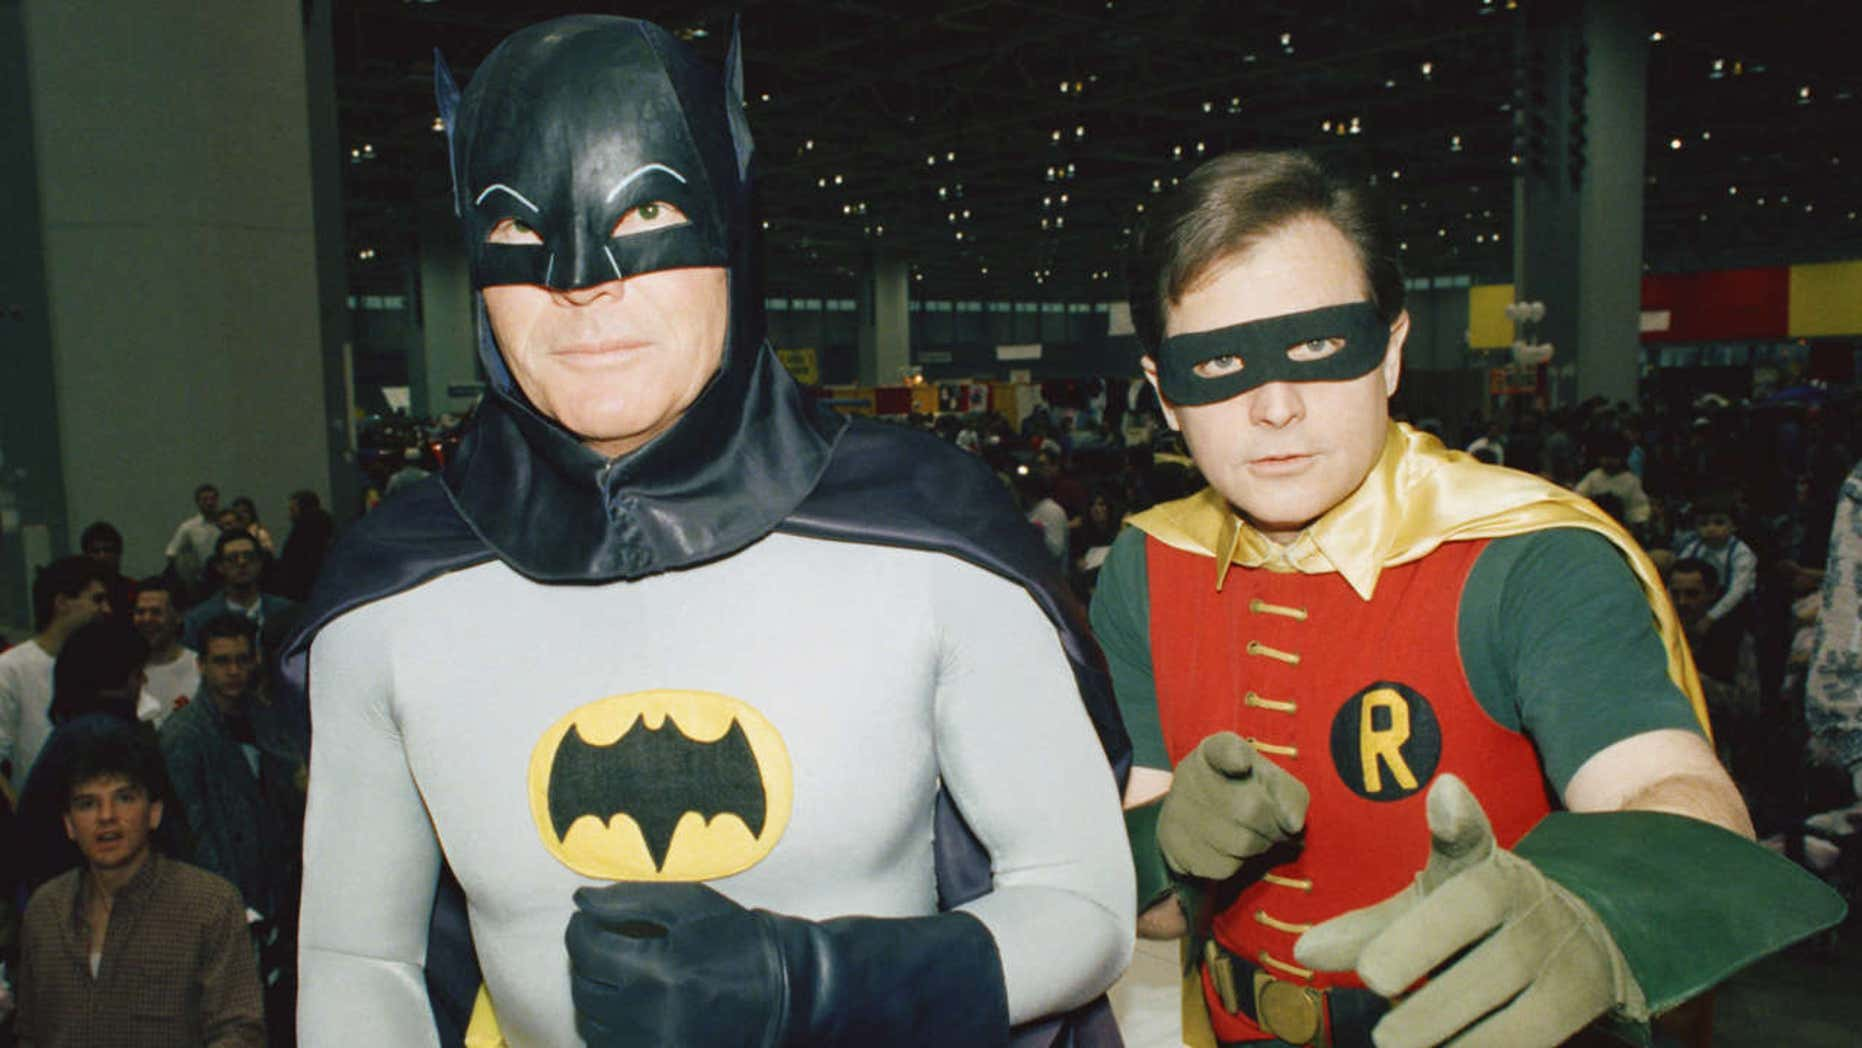 """FILE - In this Jan. 27, 1989, file photo, actors Adam West, left, and Burt Ward, dressed as their characters Batman and Robin, pose for a photo at the """"World of Wheels"""" custom car show in Chicago."""